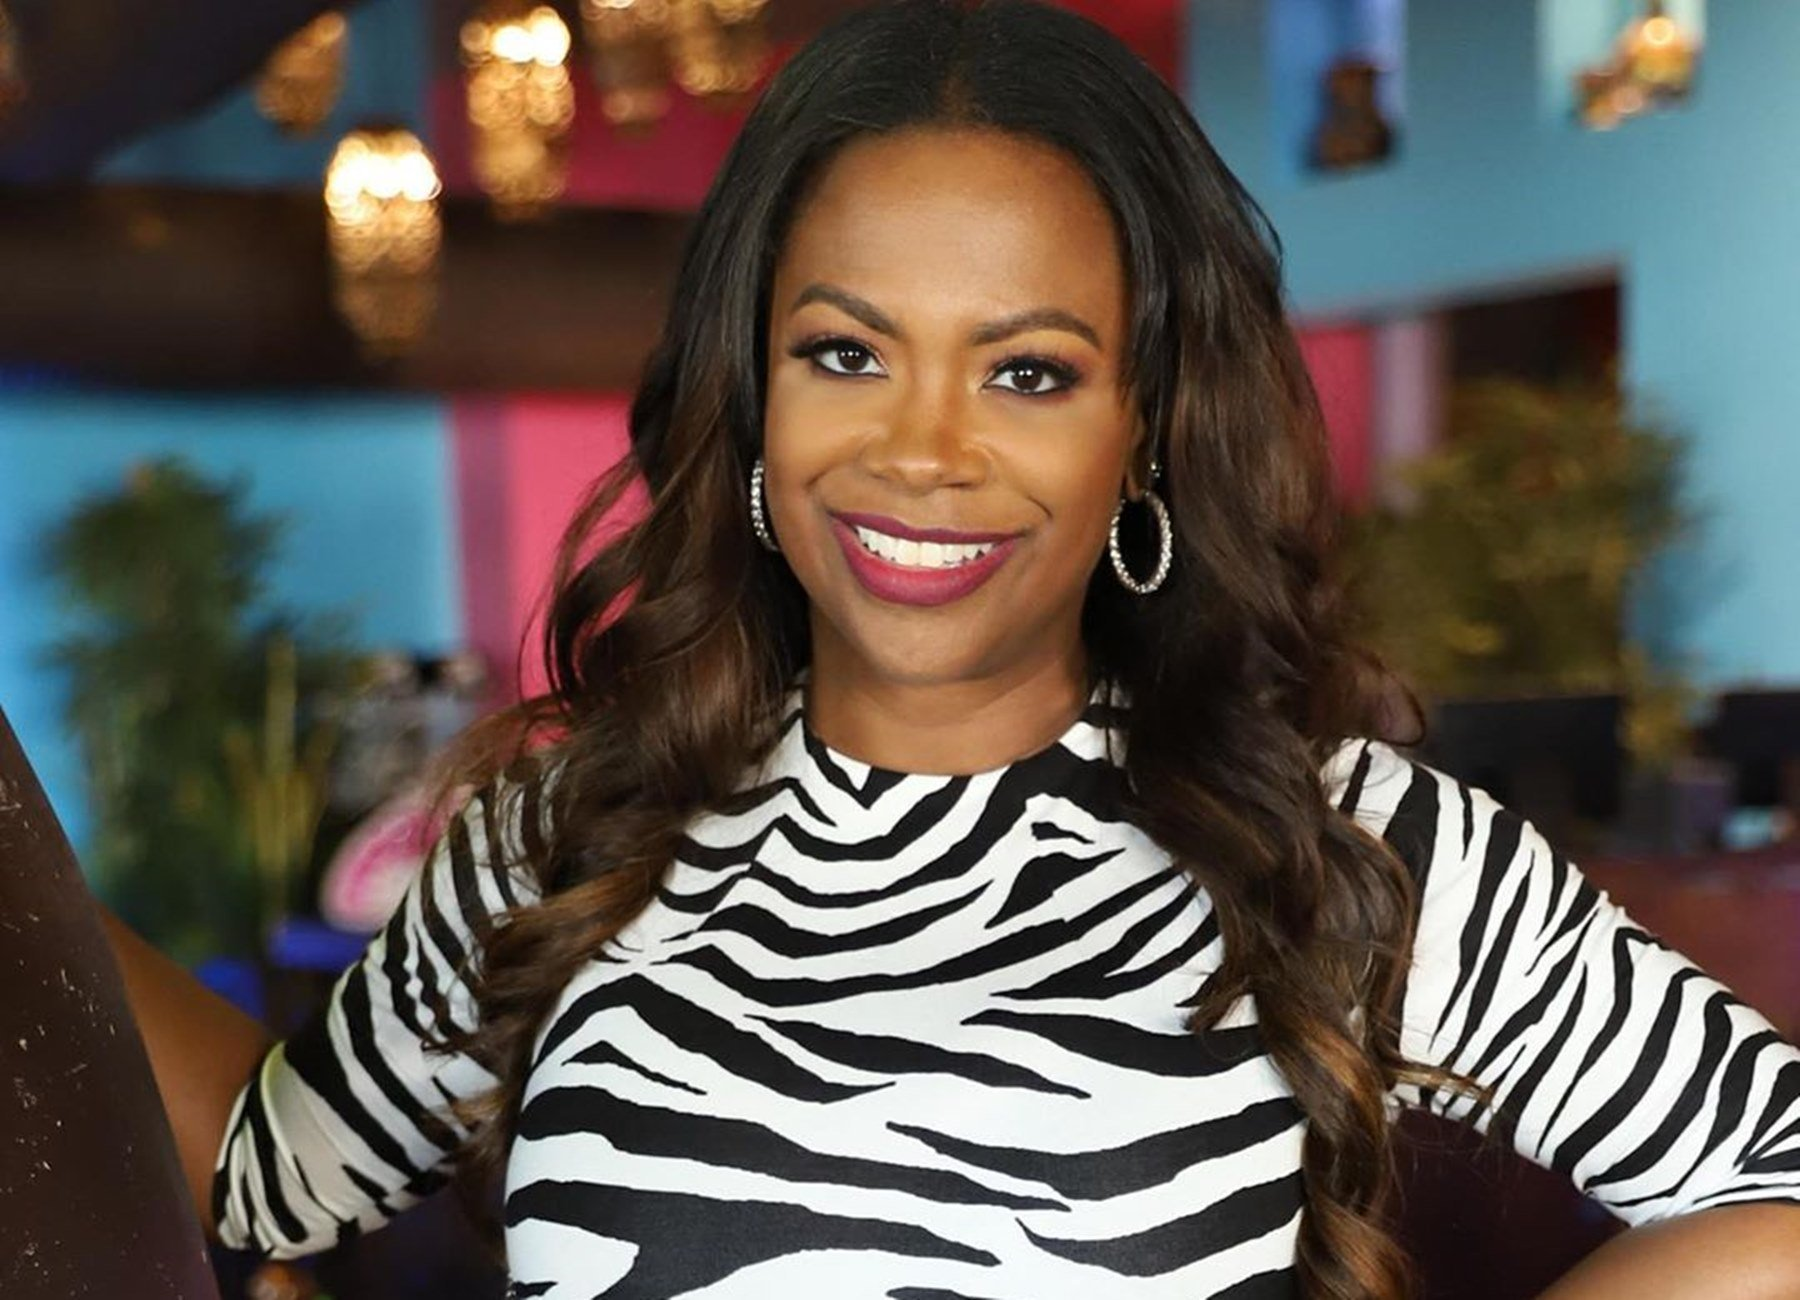 Kandi Burruss' Video Featuring Ace Wells Tucker Will Make Fans Smile